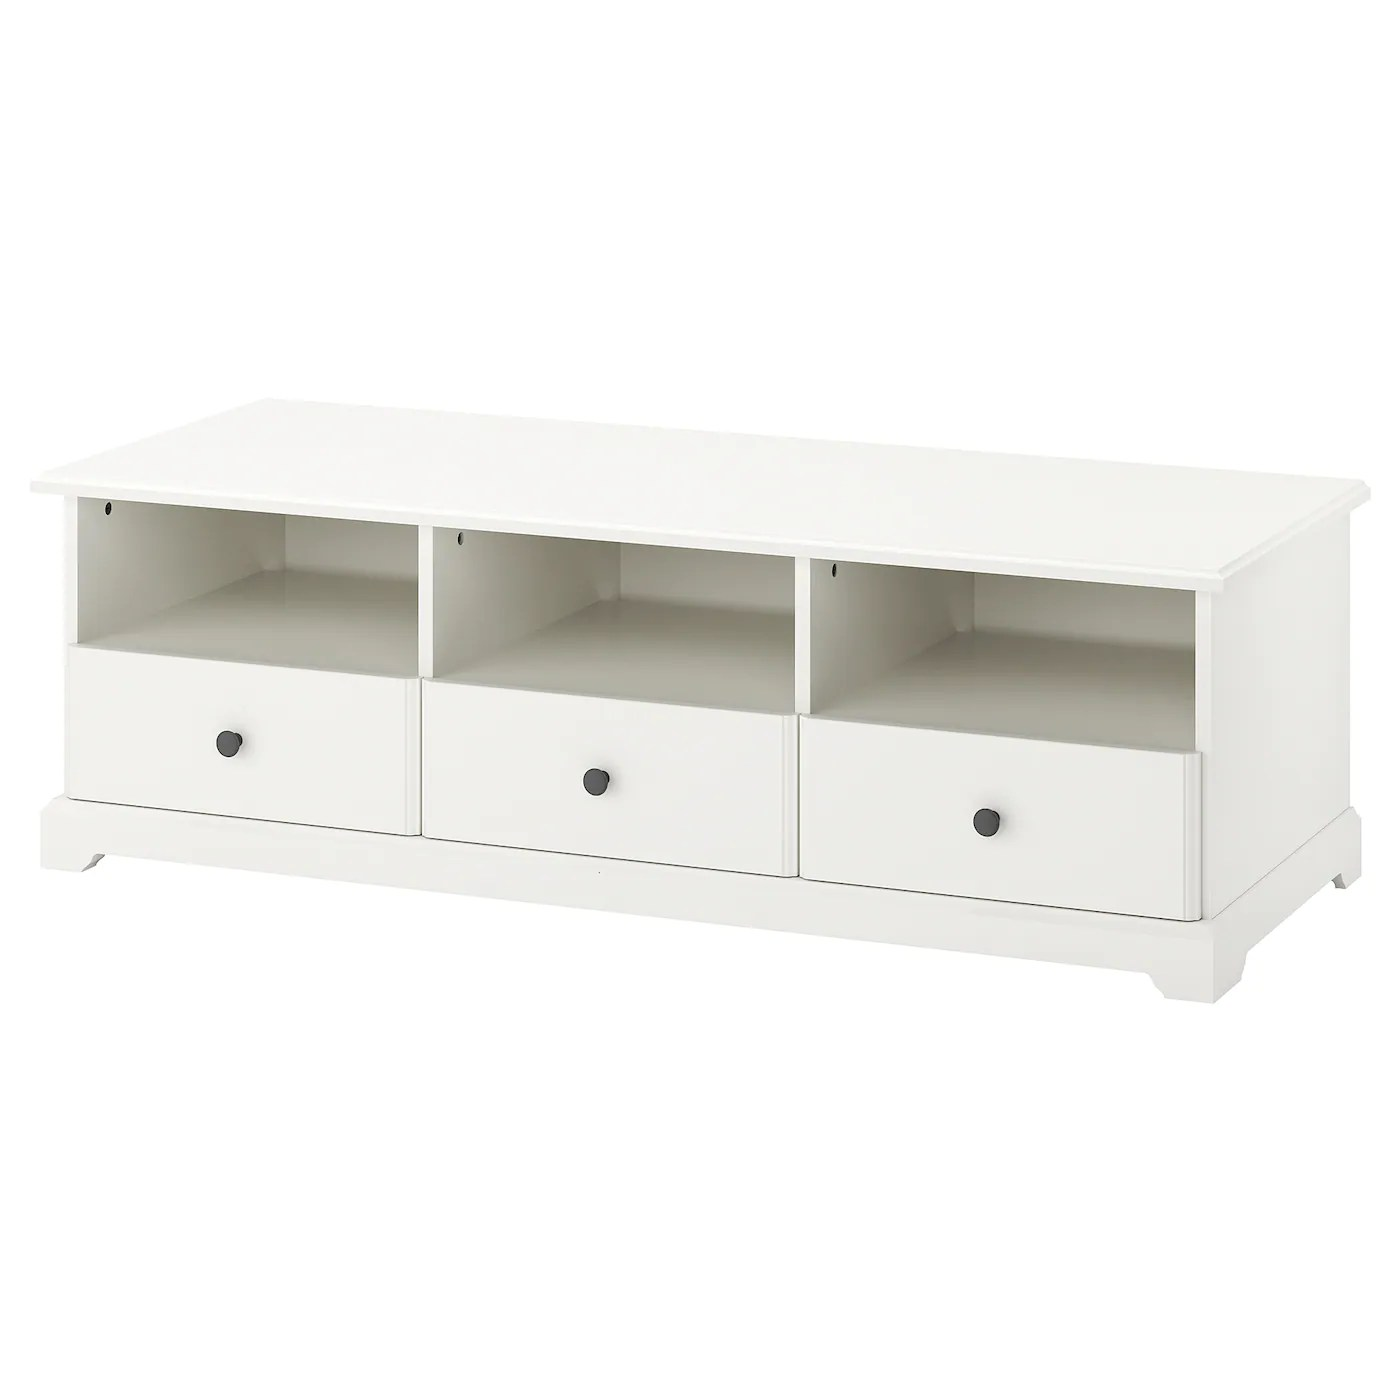 Ikea Liatorp Tv Bank Liatorp Mueble Tv Blanco 145 X 49 X 45 Cm Ikea